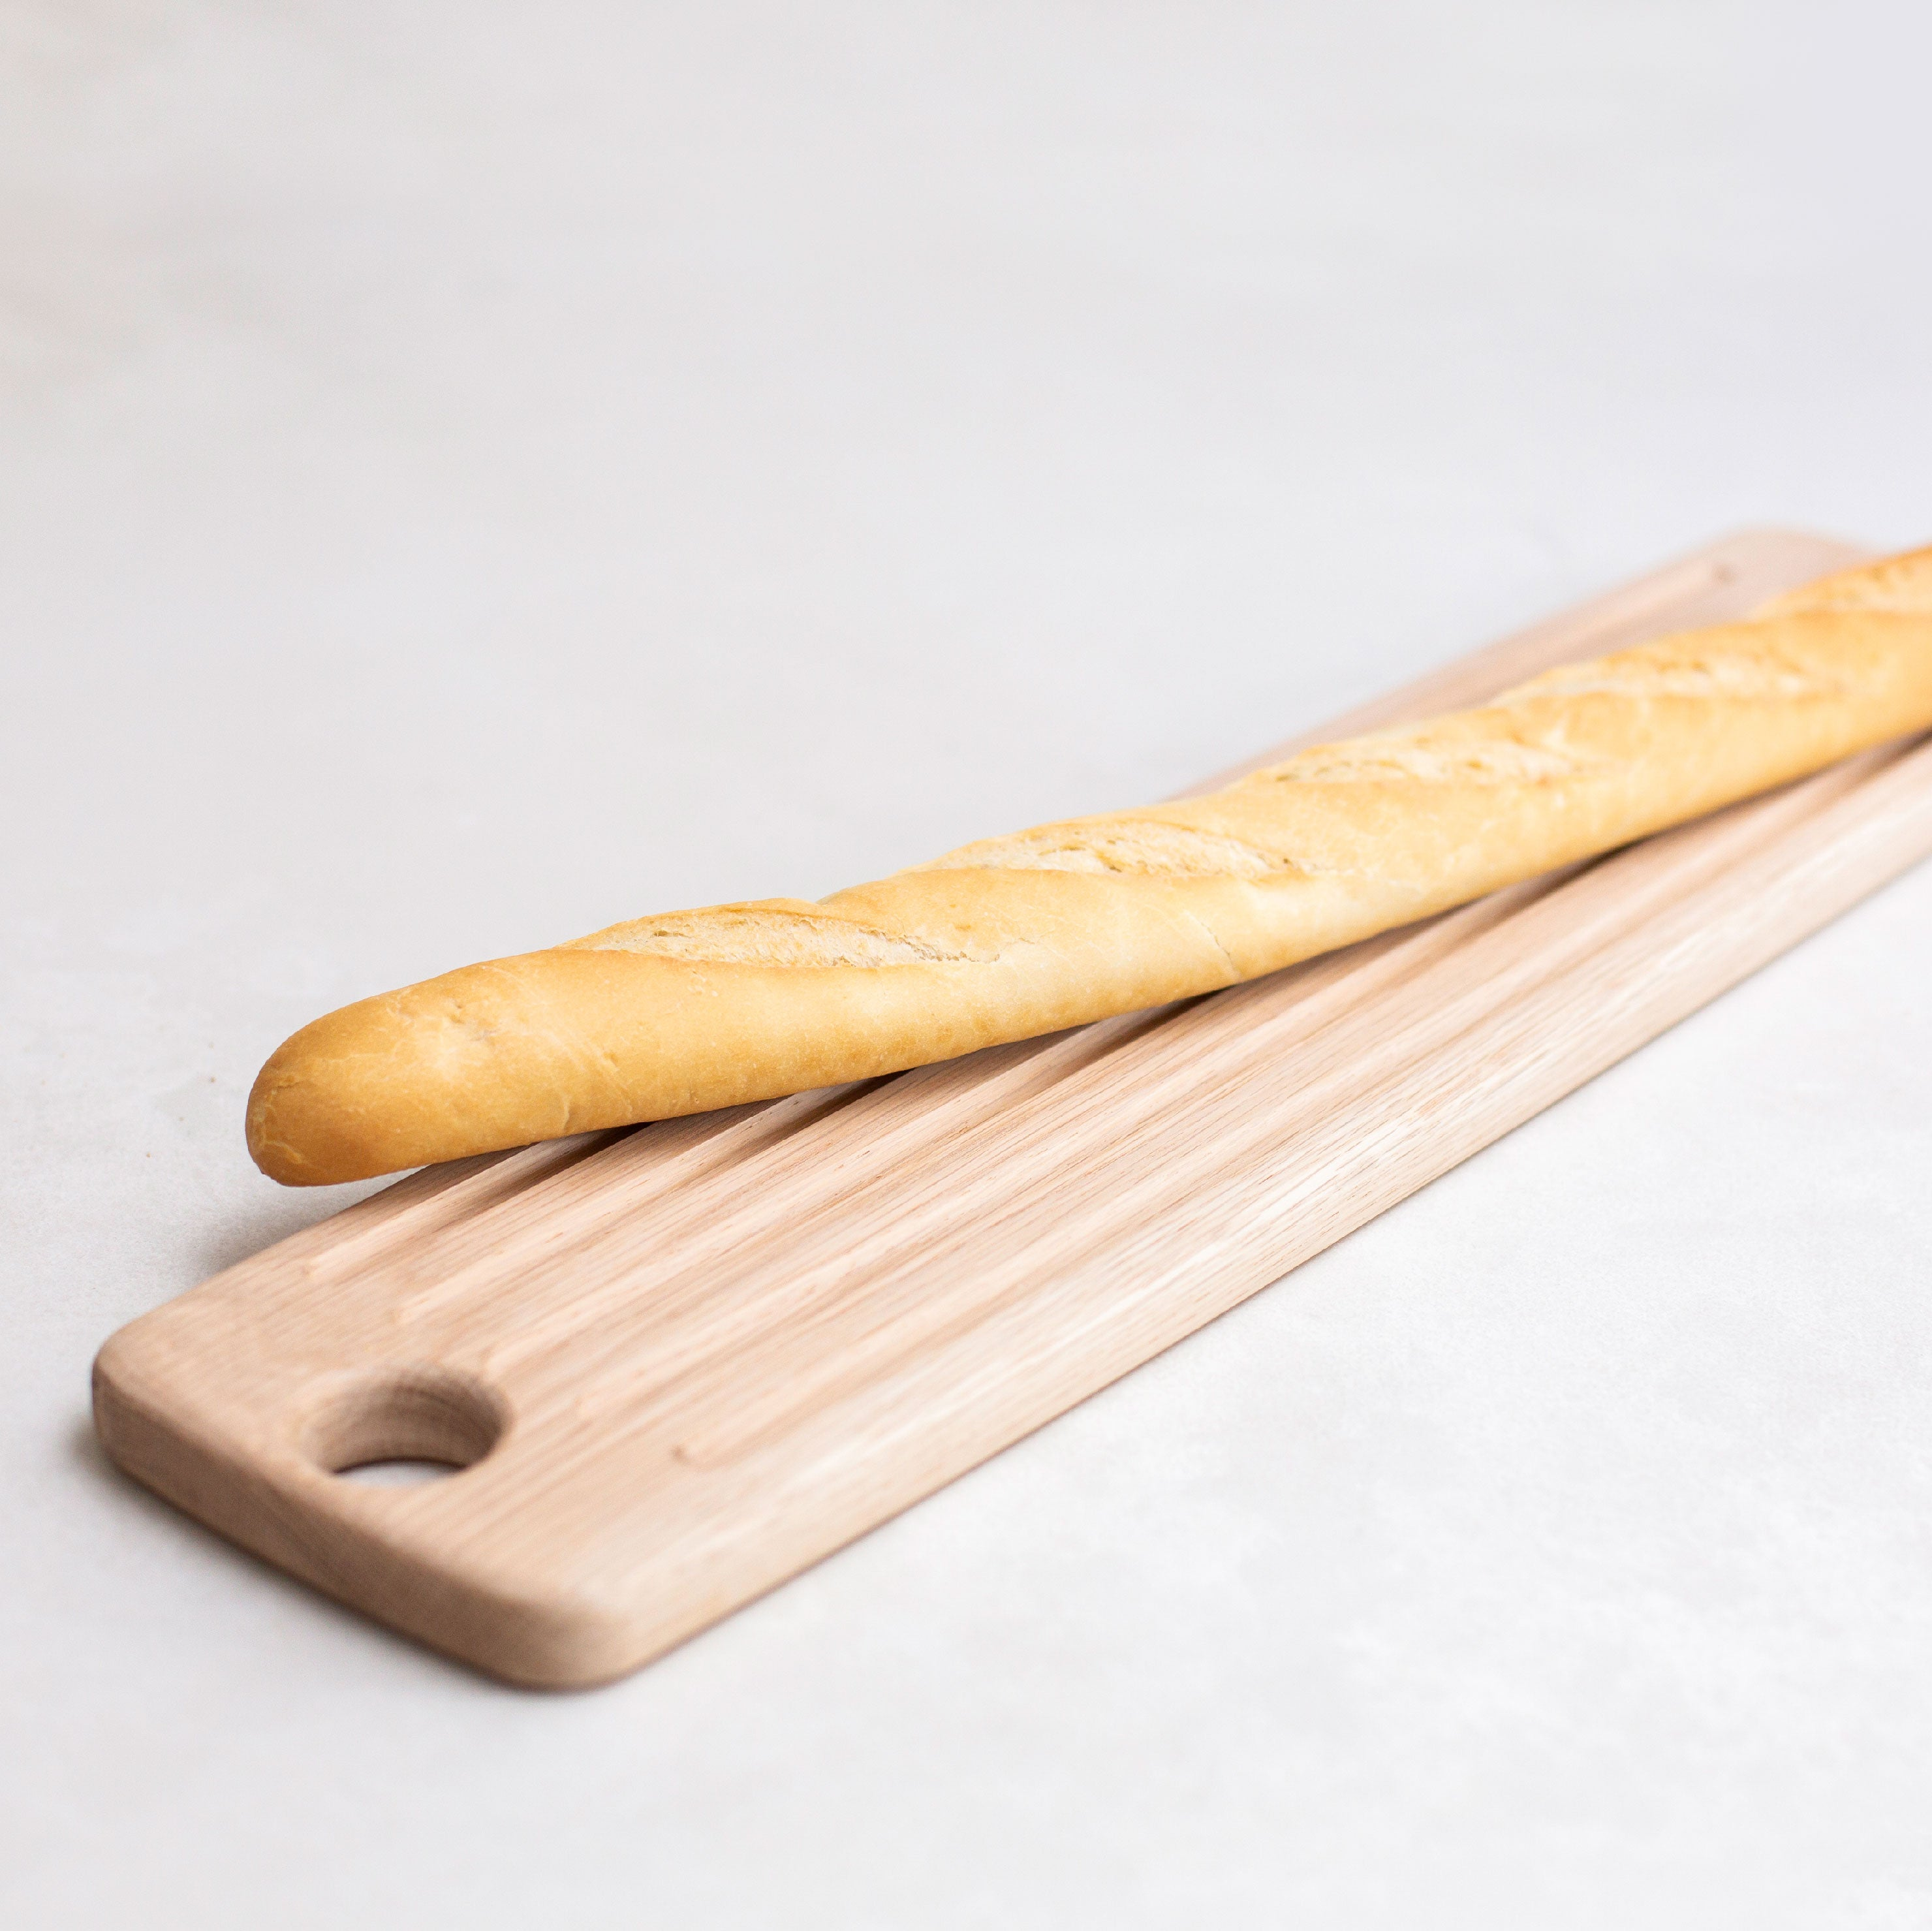 Nordic Home Serving Board - Ripple